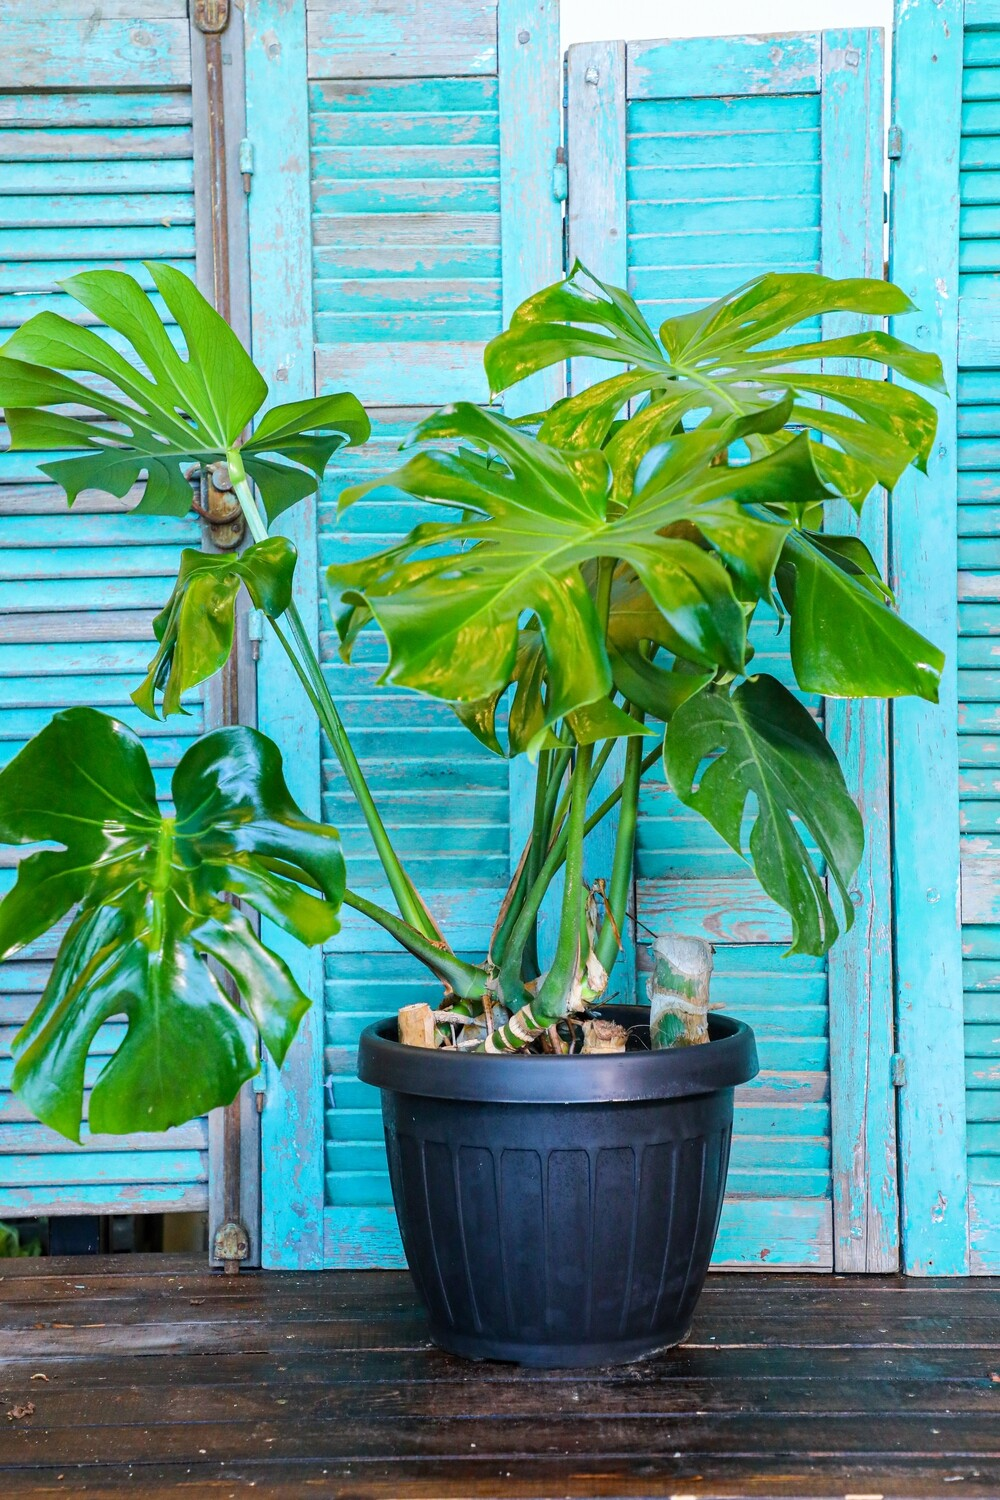 Monstera deliciosa (Plant) - Nature by Marc Beyrouthy